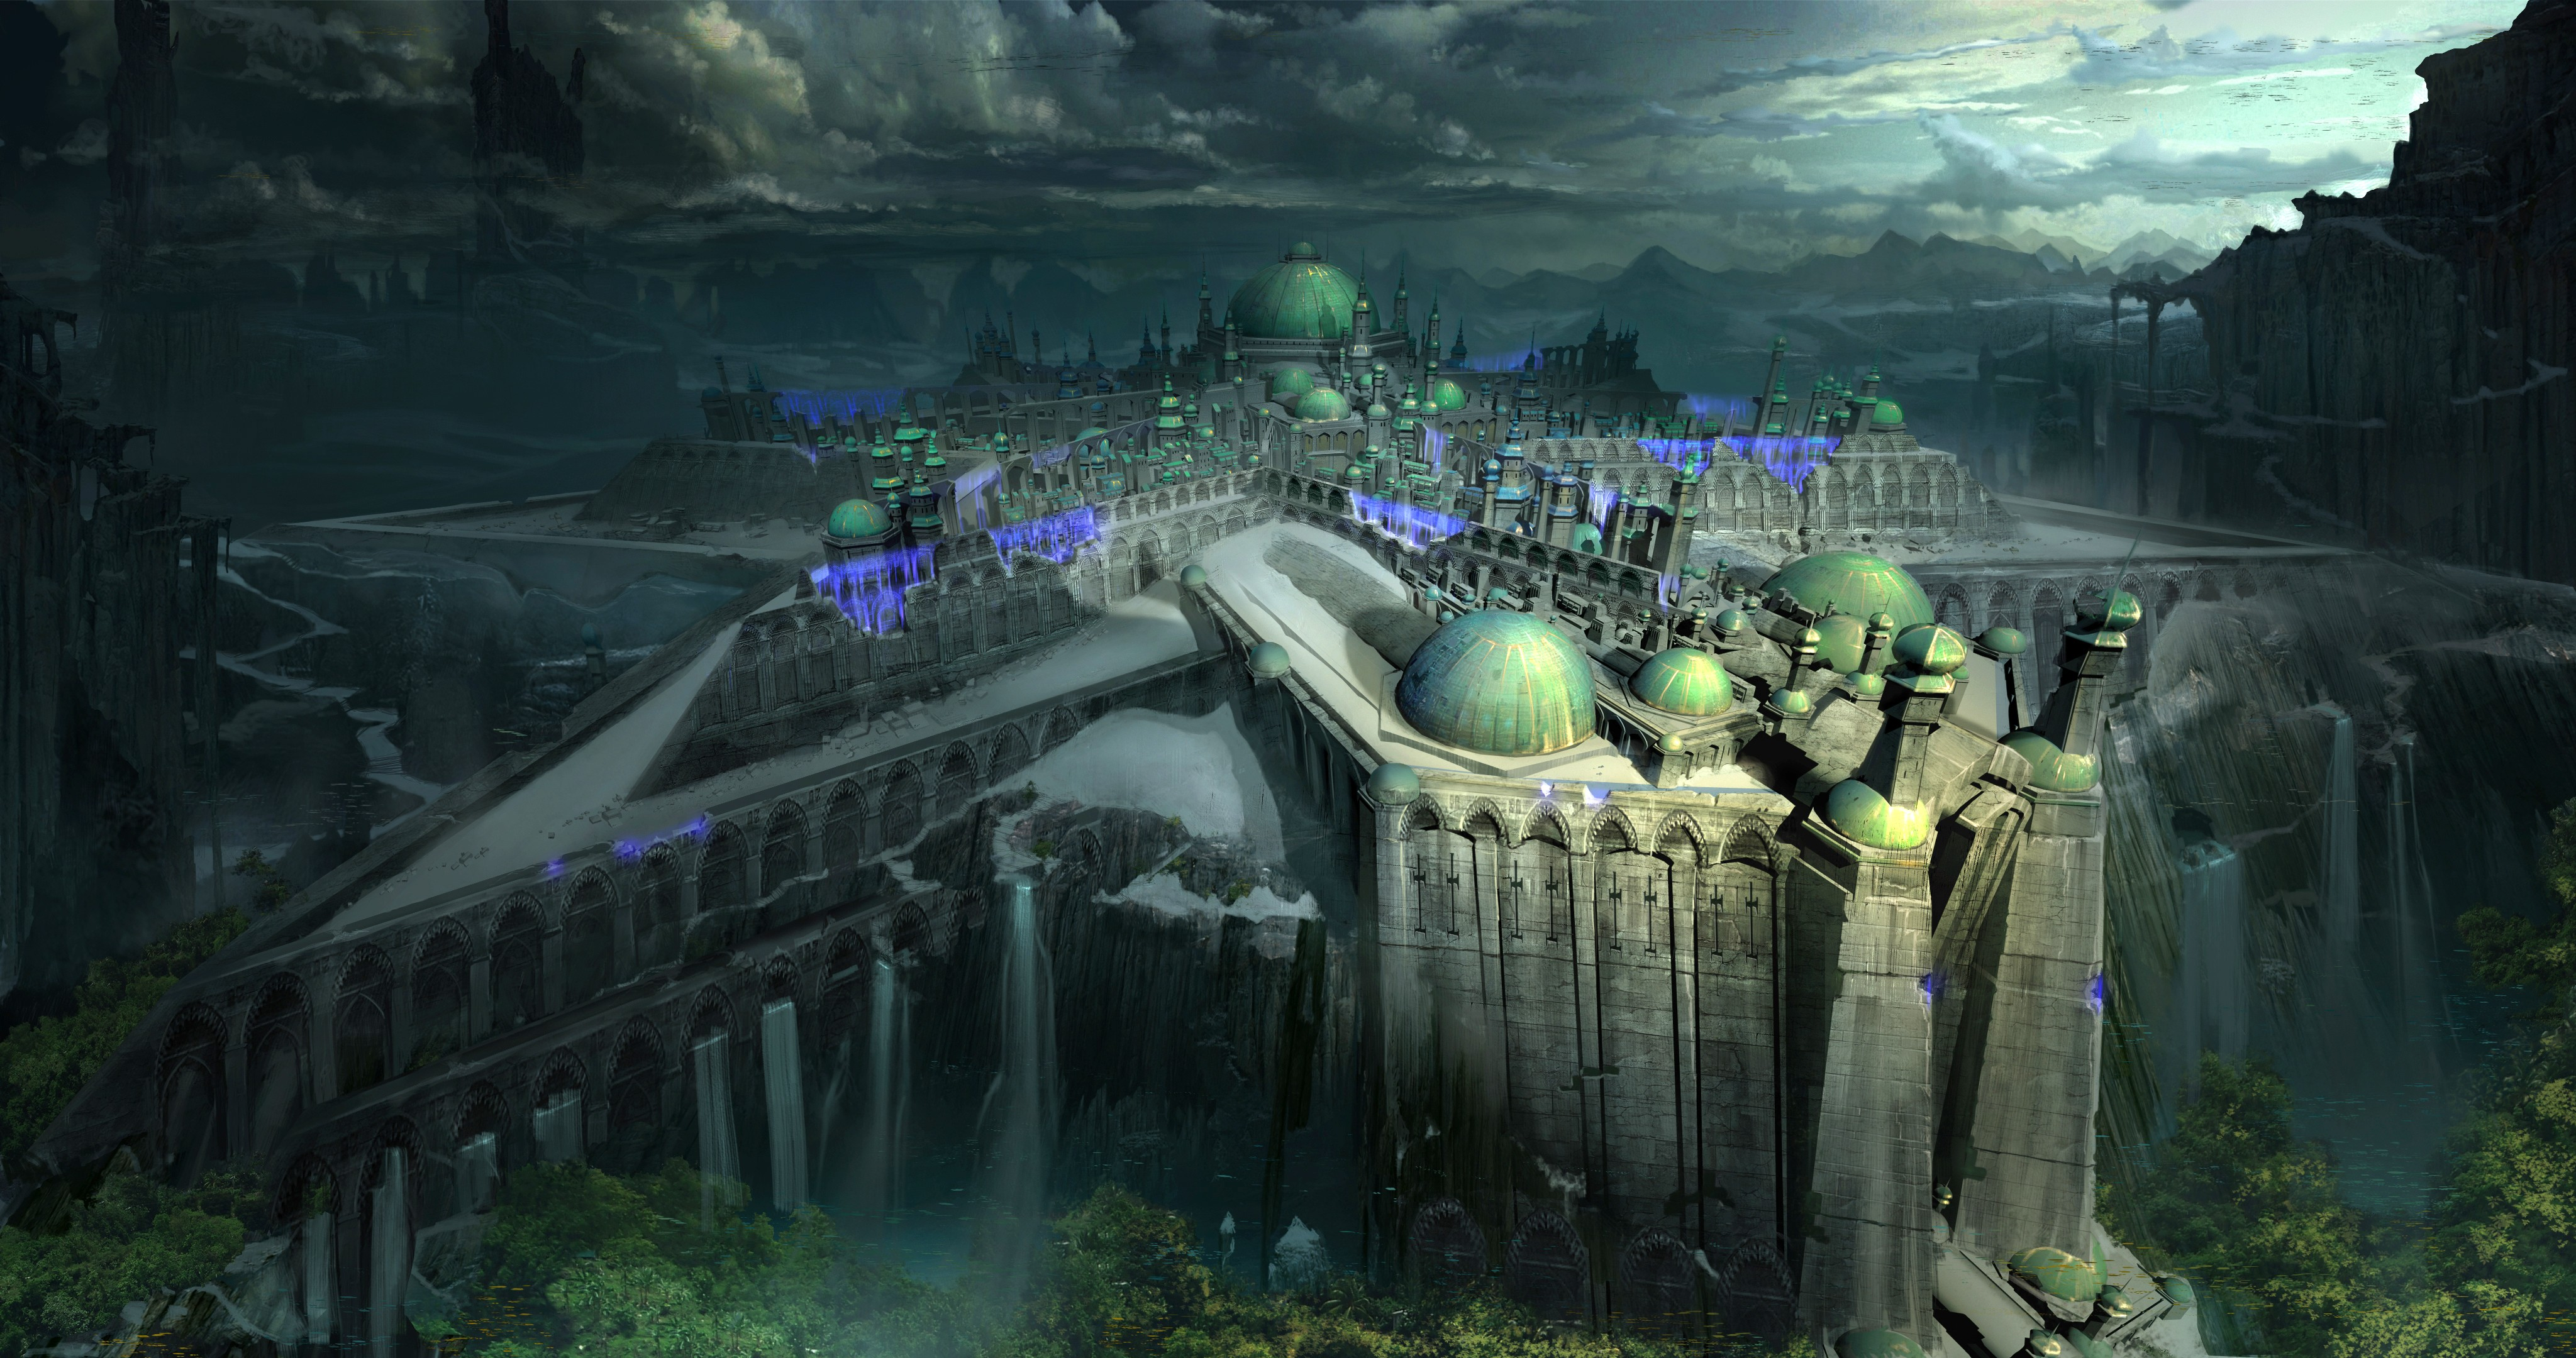 Wallpaper shadow of the colossus author artwork castle concept screenshot gameplay art - 4096x2160 wallpaper ...